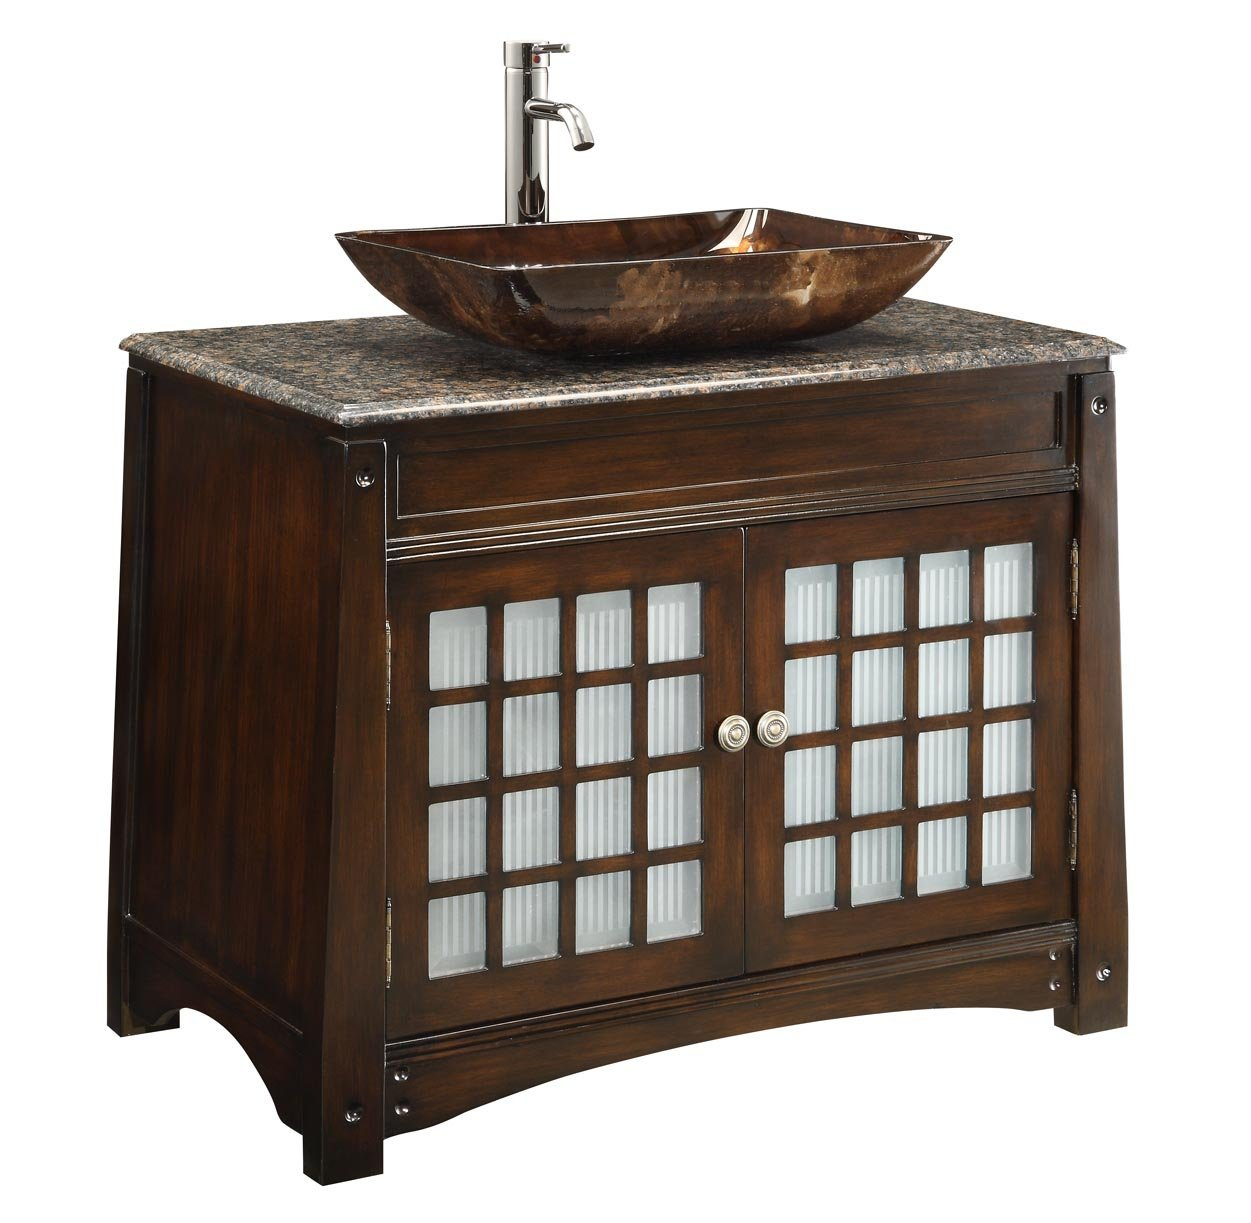 Modern Adelina 38 Inch Vessel Sink Bathroom Vanity, Dark Granite Counter intended for 36 In Bathroom Vanity With Top